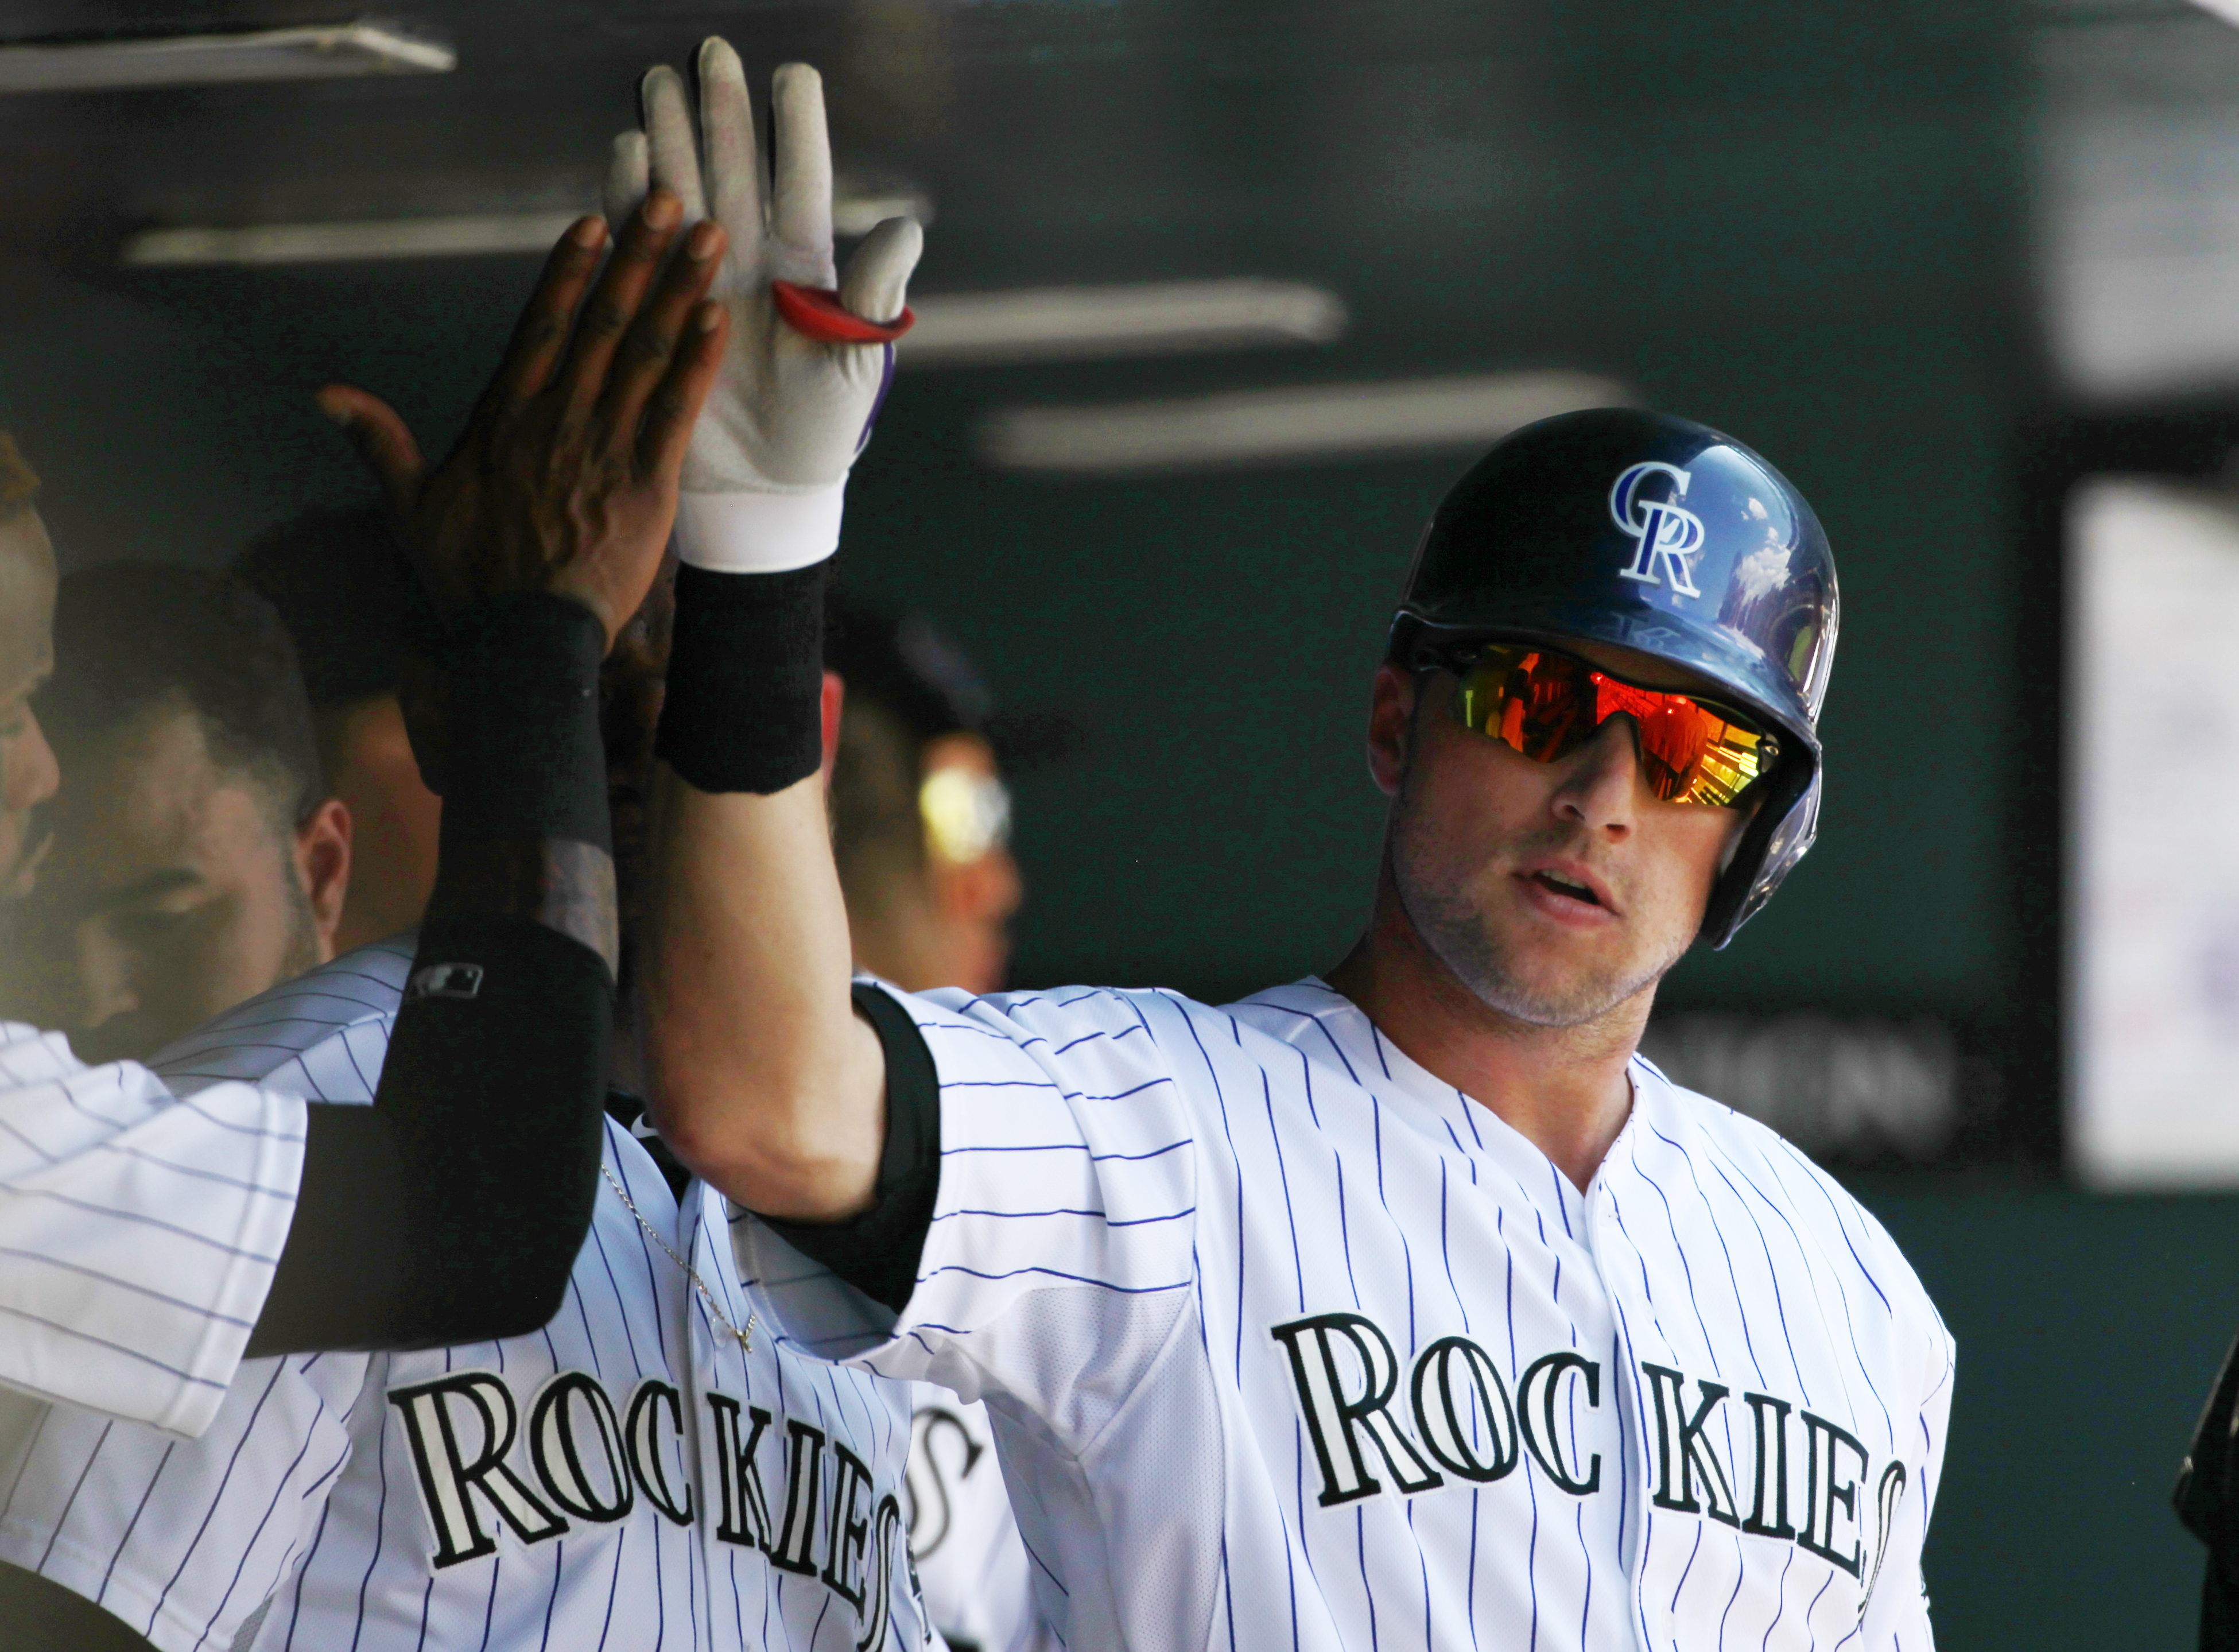 Colorado Rockies' Kyle Parker celebrates scoring a run with teammates in the dugout during the fifth inning of the first game of a baseball double header against the Arizona Diamondbacks Tuesday, Sept. 1, 2015, in Denver. (AP Photo/Jack Dempsey)